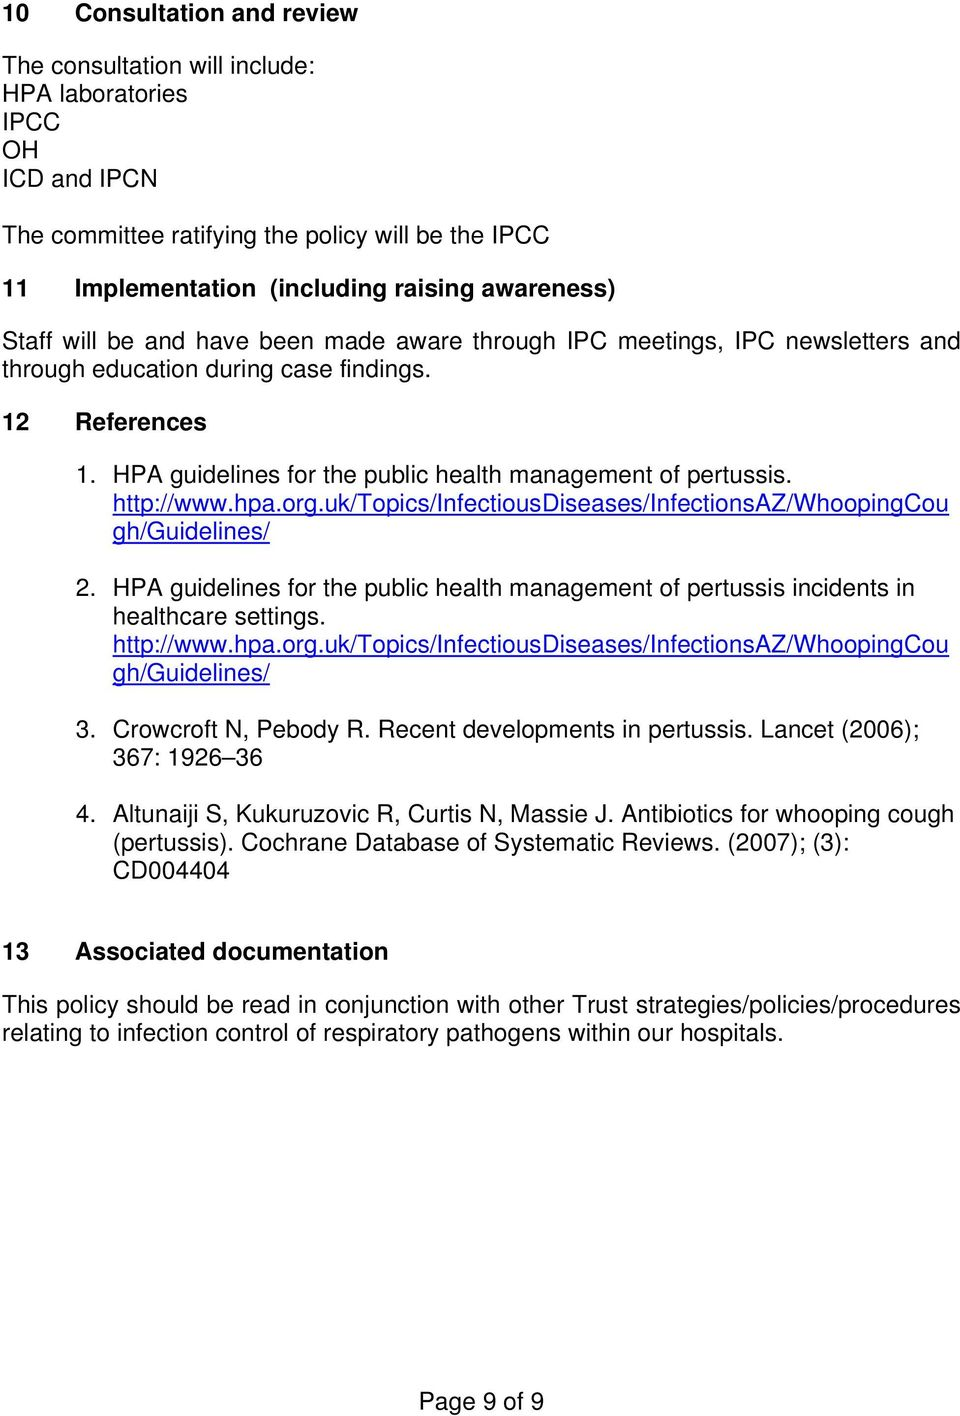 http://www.hpa.org.uk/topics/infectiousdiseases/infectionsaz/whoopingcou gh/guidelines/ 2. HPA guidelines for the public health management of pertussis incidents in healthcare settings. http://www.